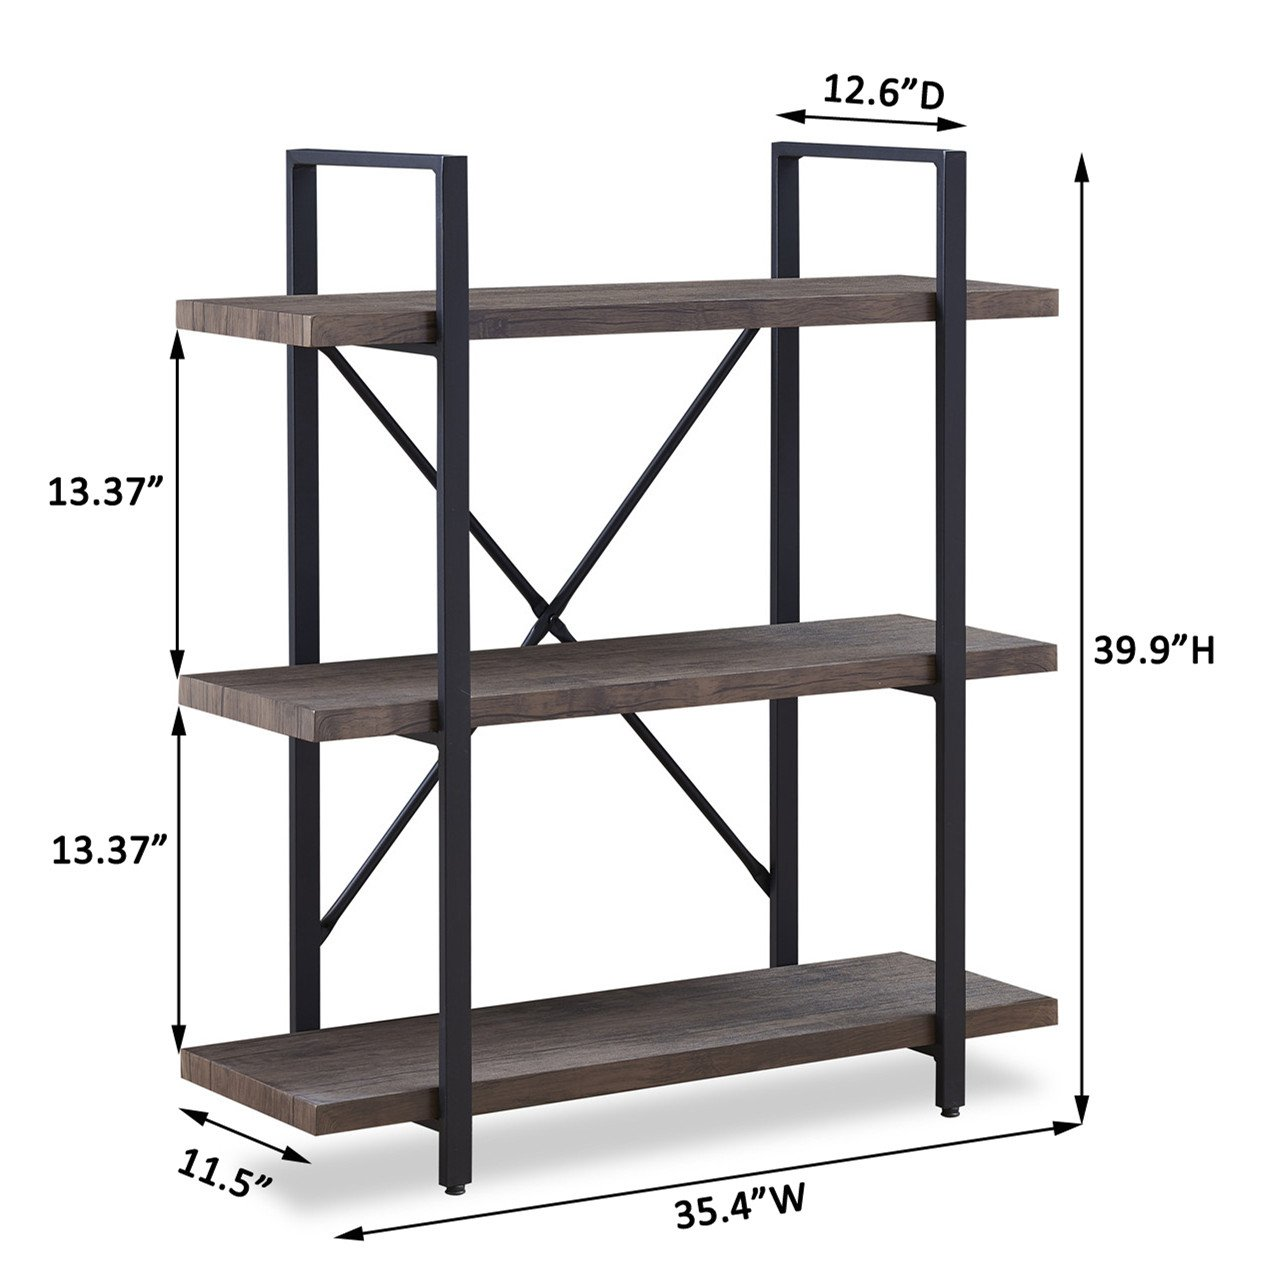 O&K Furniture 3-Shelf Industrial Bookcase and Book Shelves, Free Standing Storage Display Shelves, Brown by O&K Furniture (Image #5)